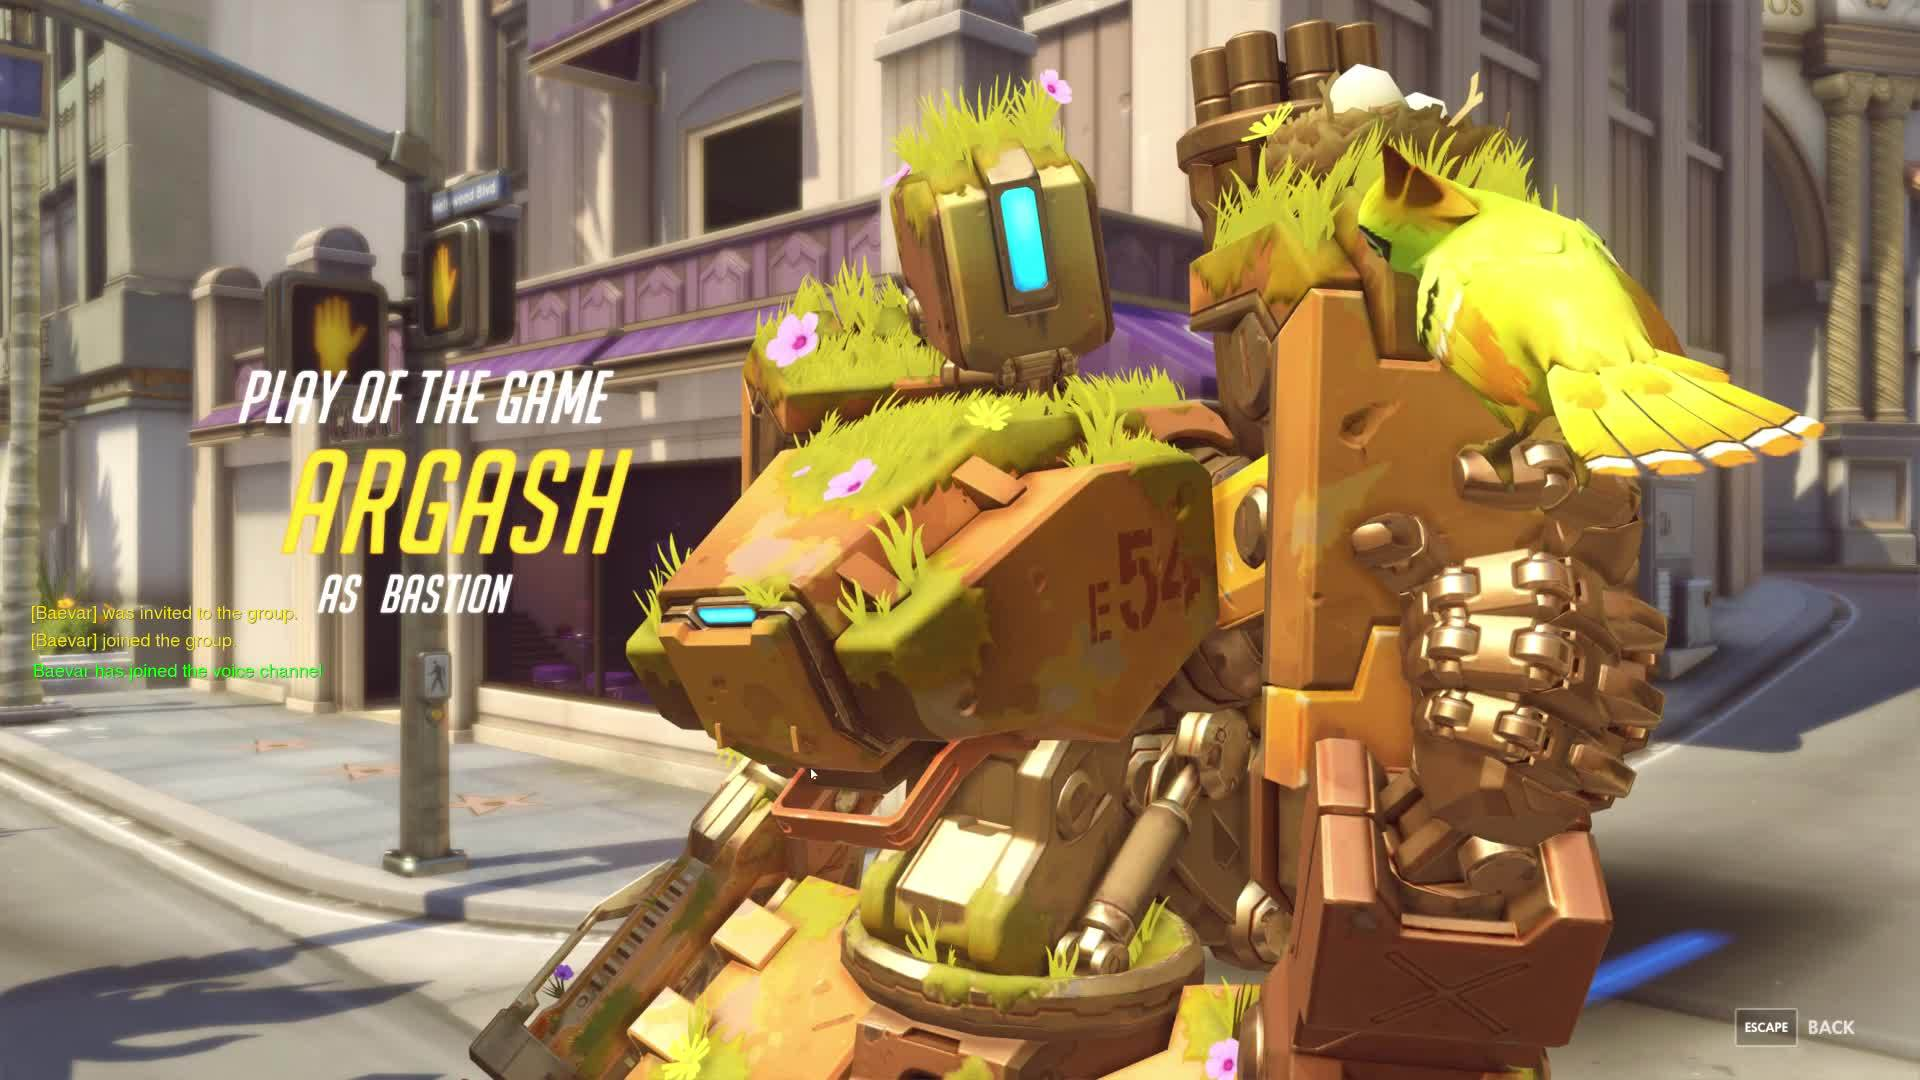 bastion, hollywood, overwatch, Feed me Seymour GIFs